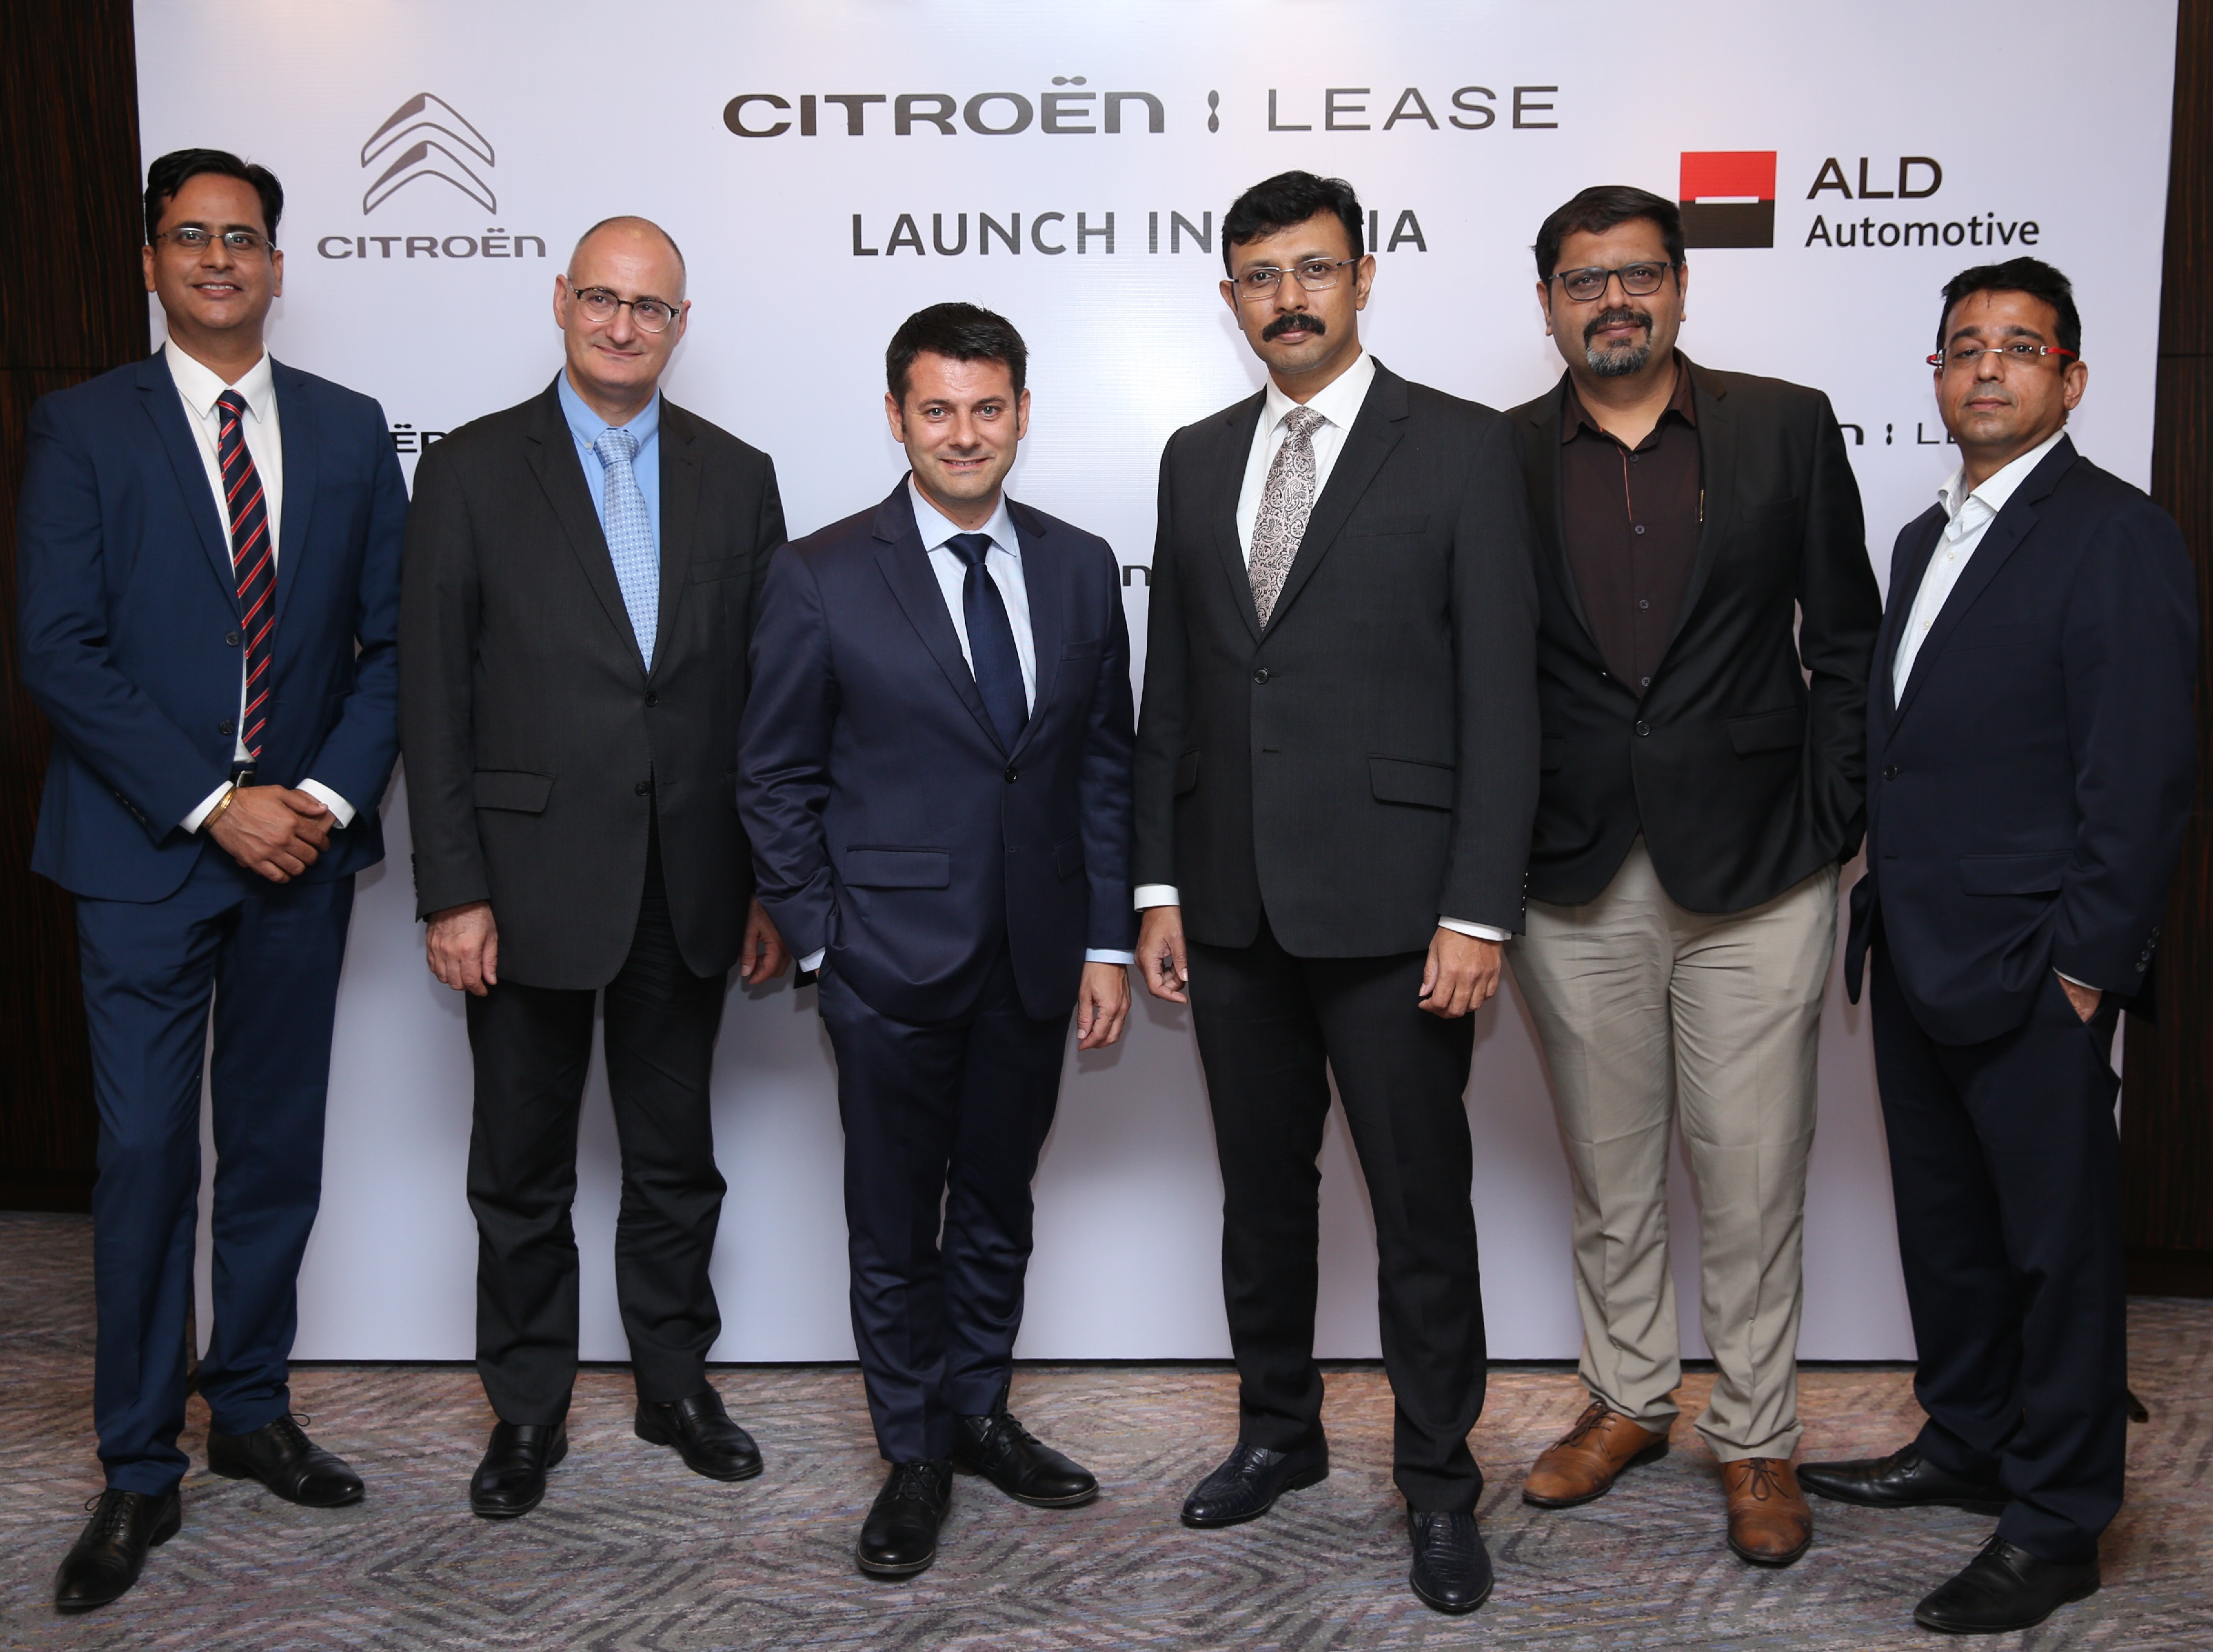 GROUPE PSA LAUNCHES NEW MOBILITY SOLUTIONS IN PARTNERSHIP WITH ALD AUTOMOTIVE IN INDIA TO SUPPORT CITROËN OFFENSIVE